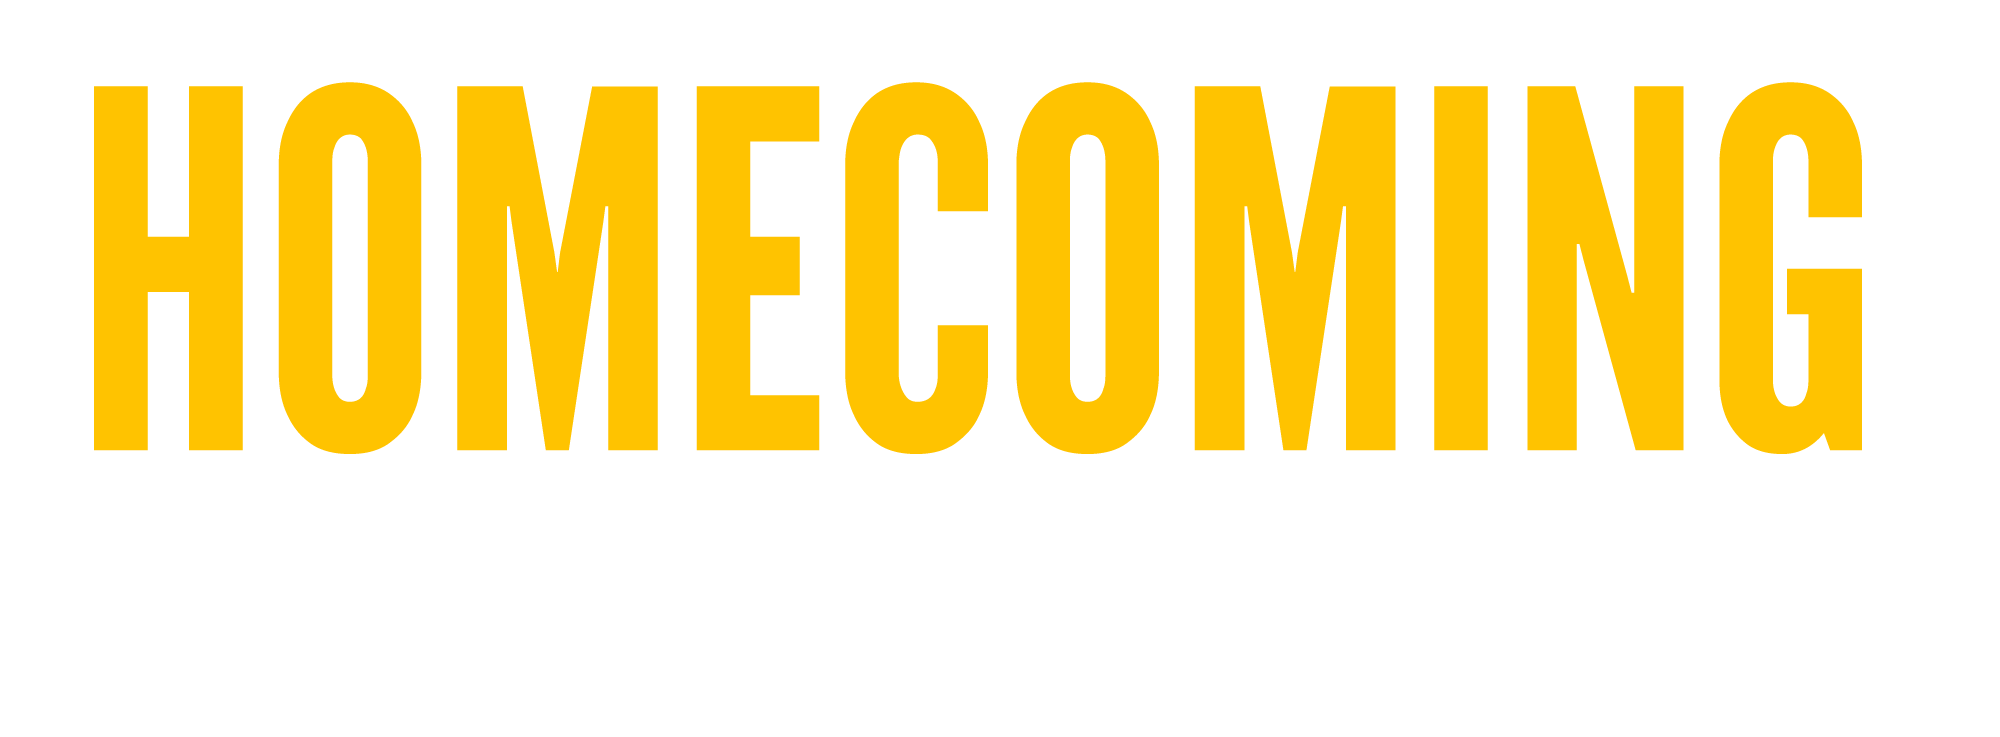 Homecoming February 13-18, 2017